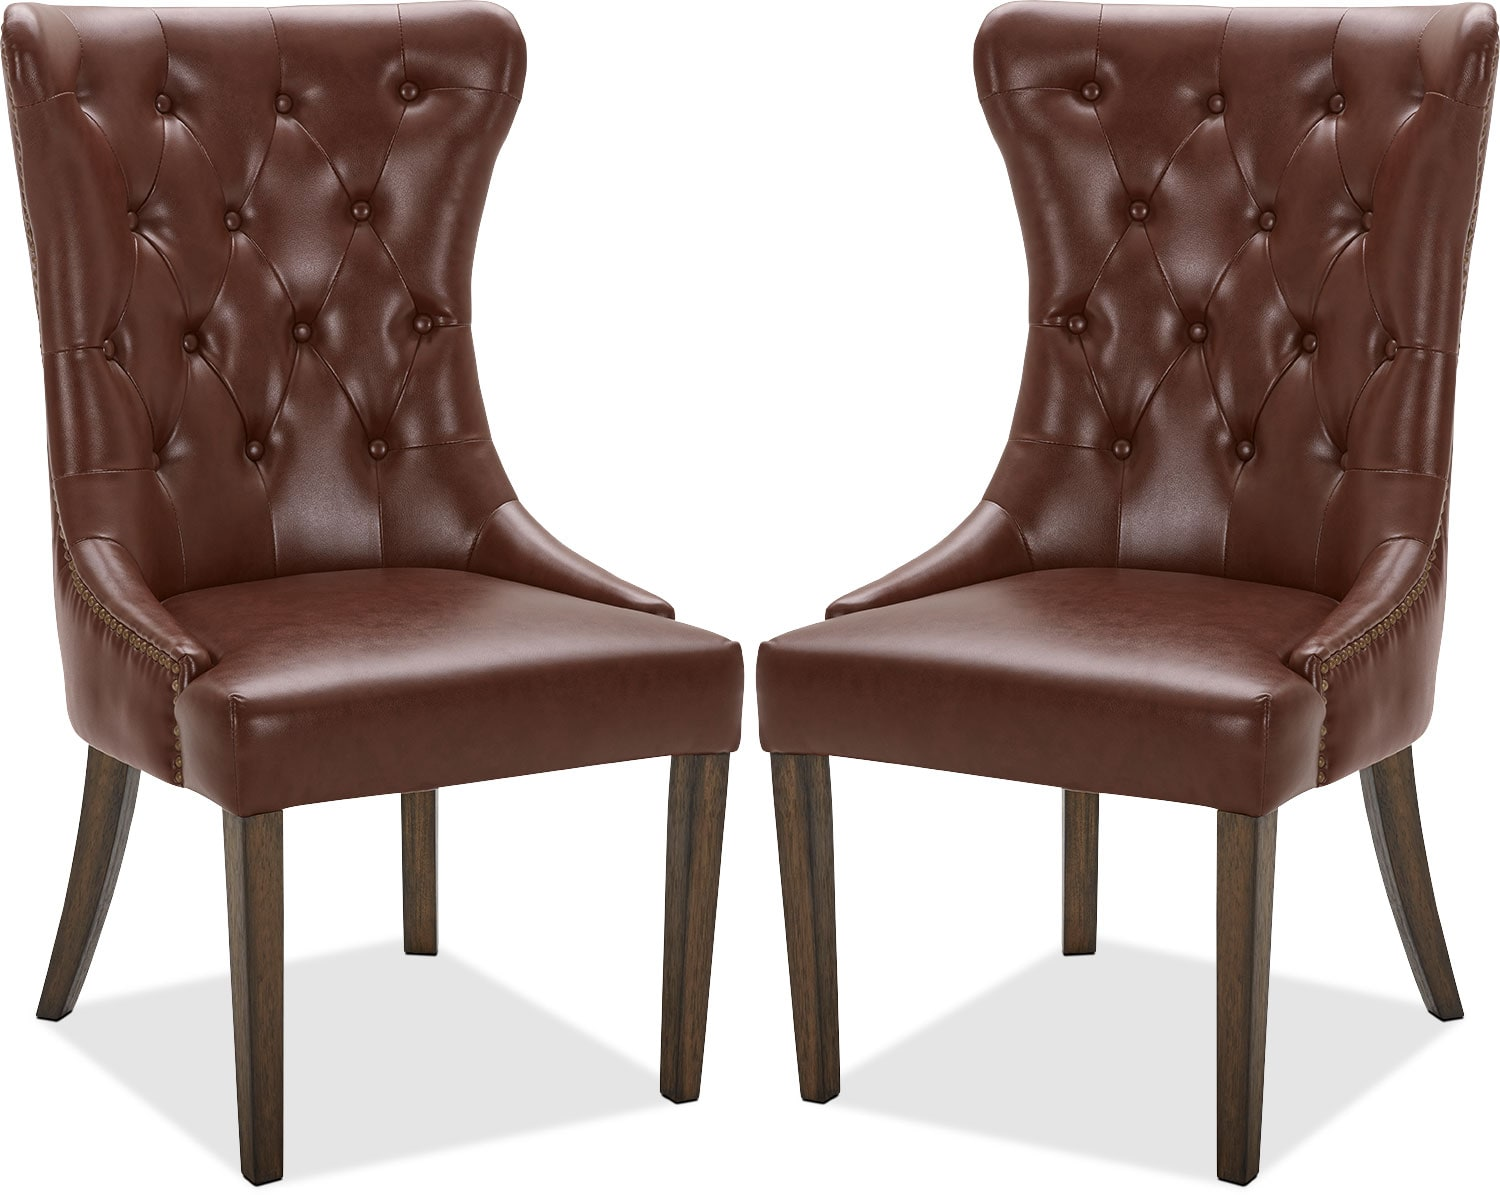 Gabby Dining Chair, Set of 2